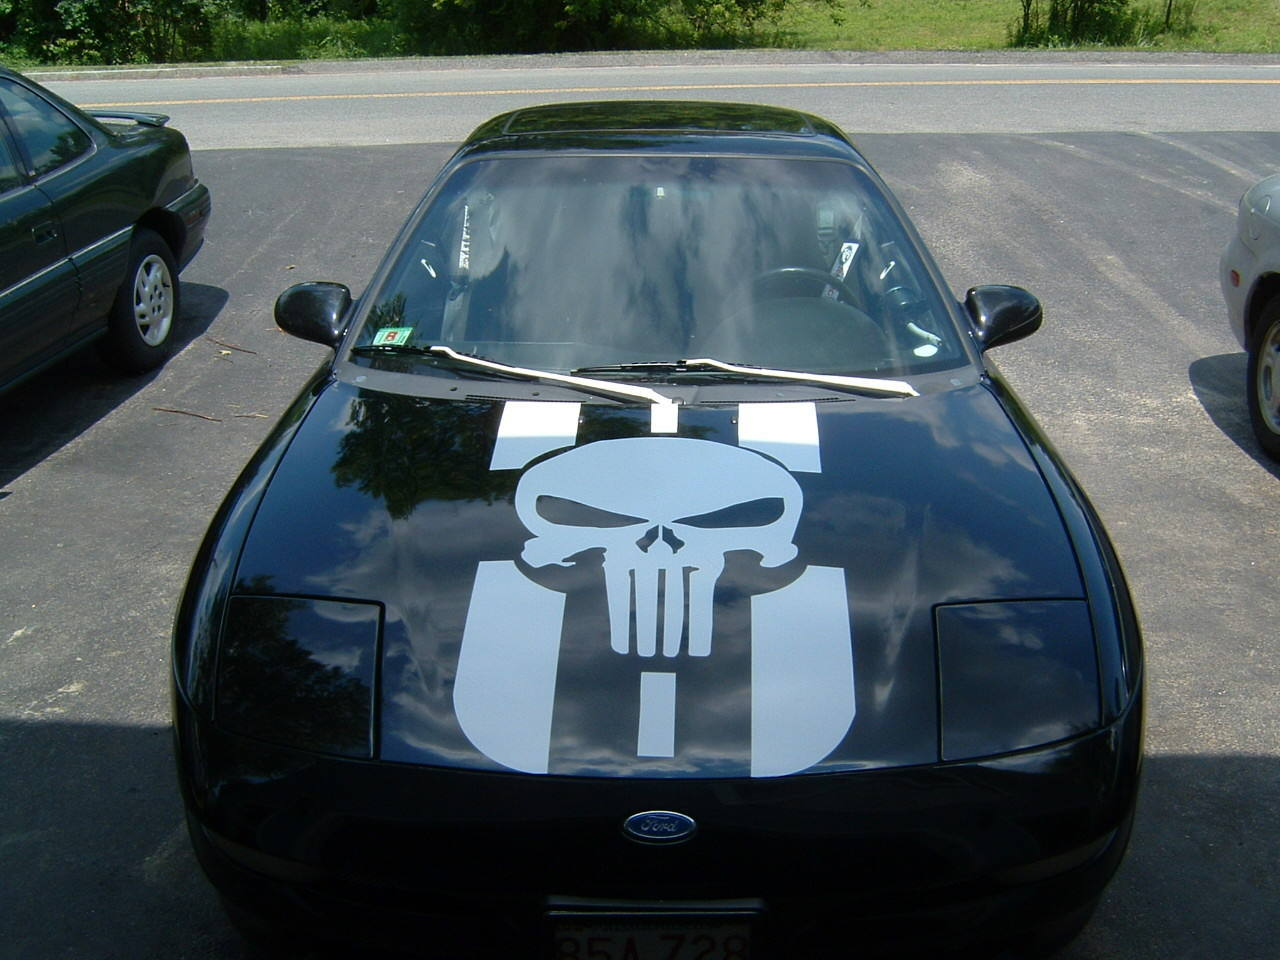 CUSTOM DECALS And CUSTOM STICKERS - Custom vinyl decal stickers for cars